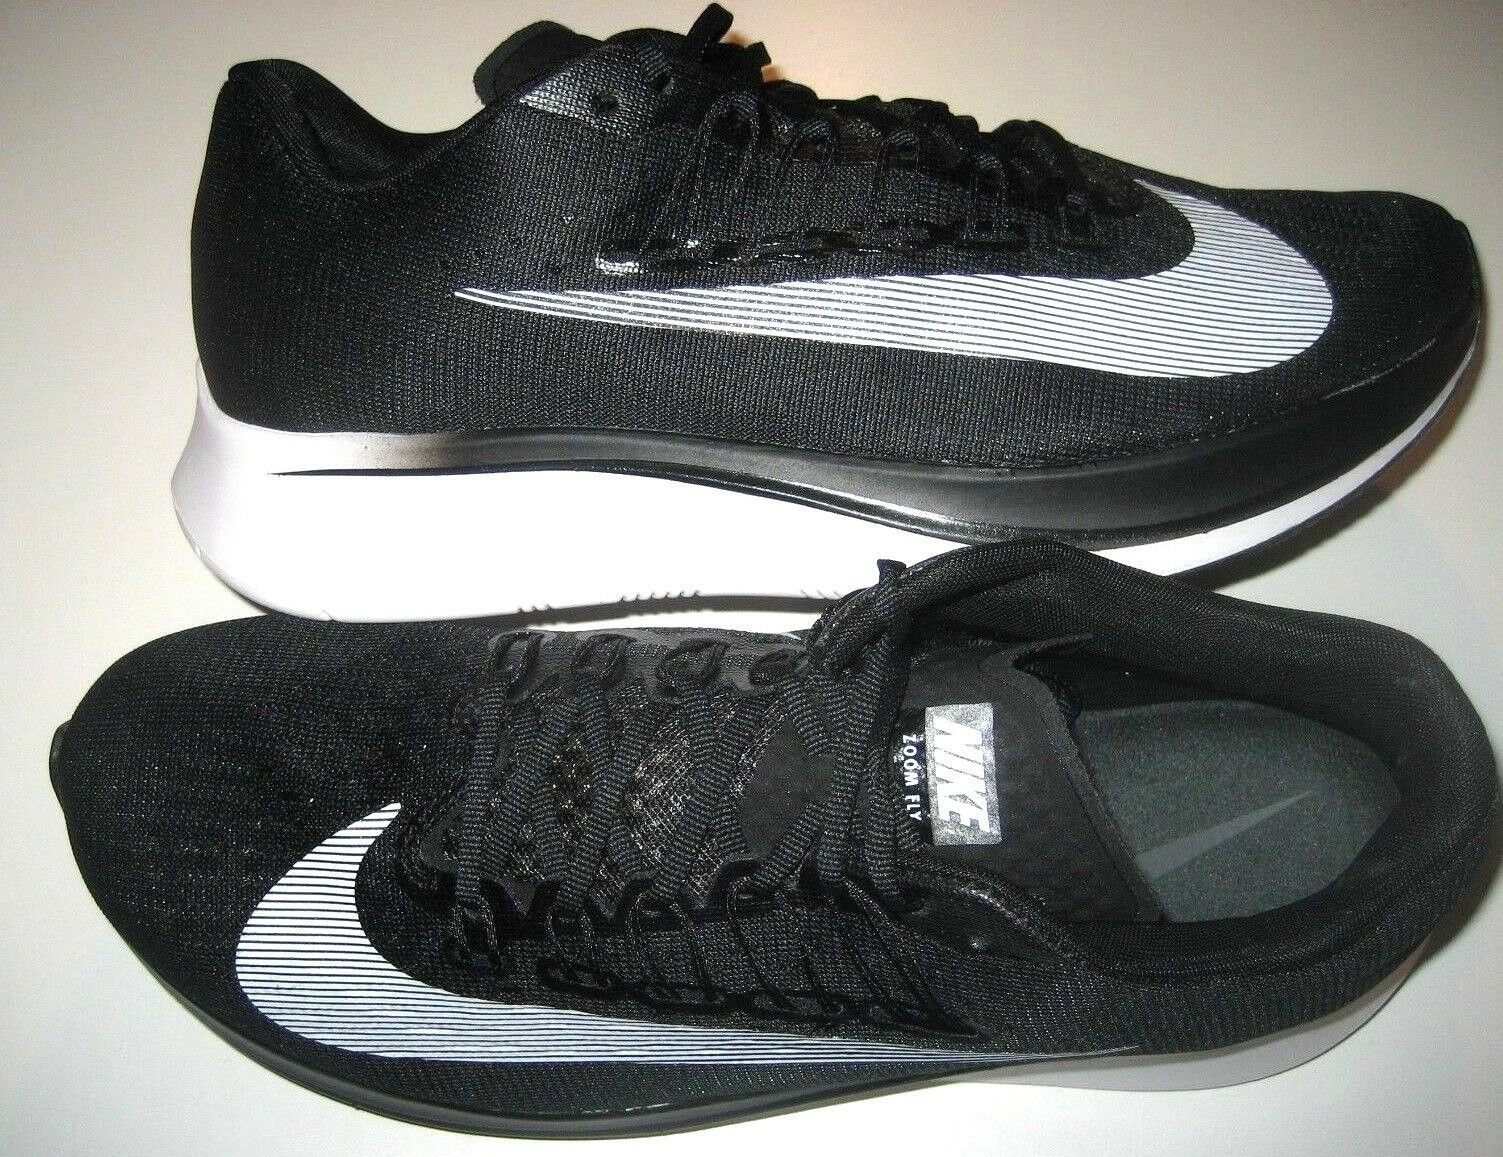 Nike Mens Zoom Zoom Zoom Fly Running shoes Black White Anthracite Size 10.5 880848 001 New 473b88